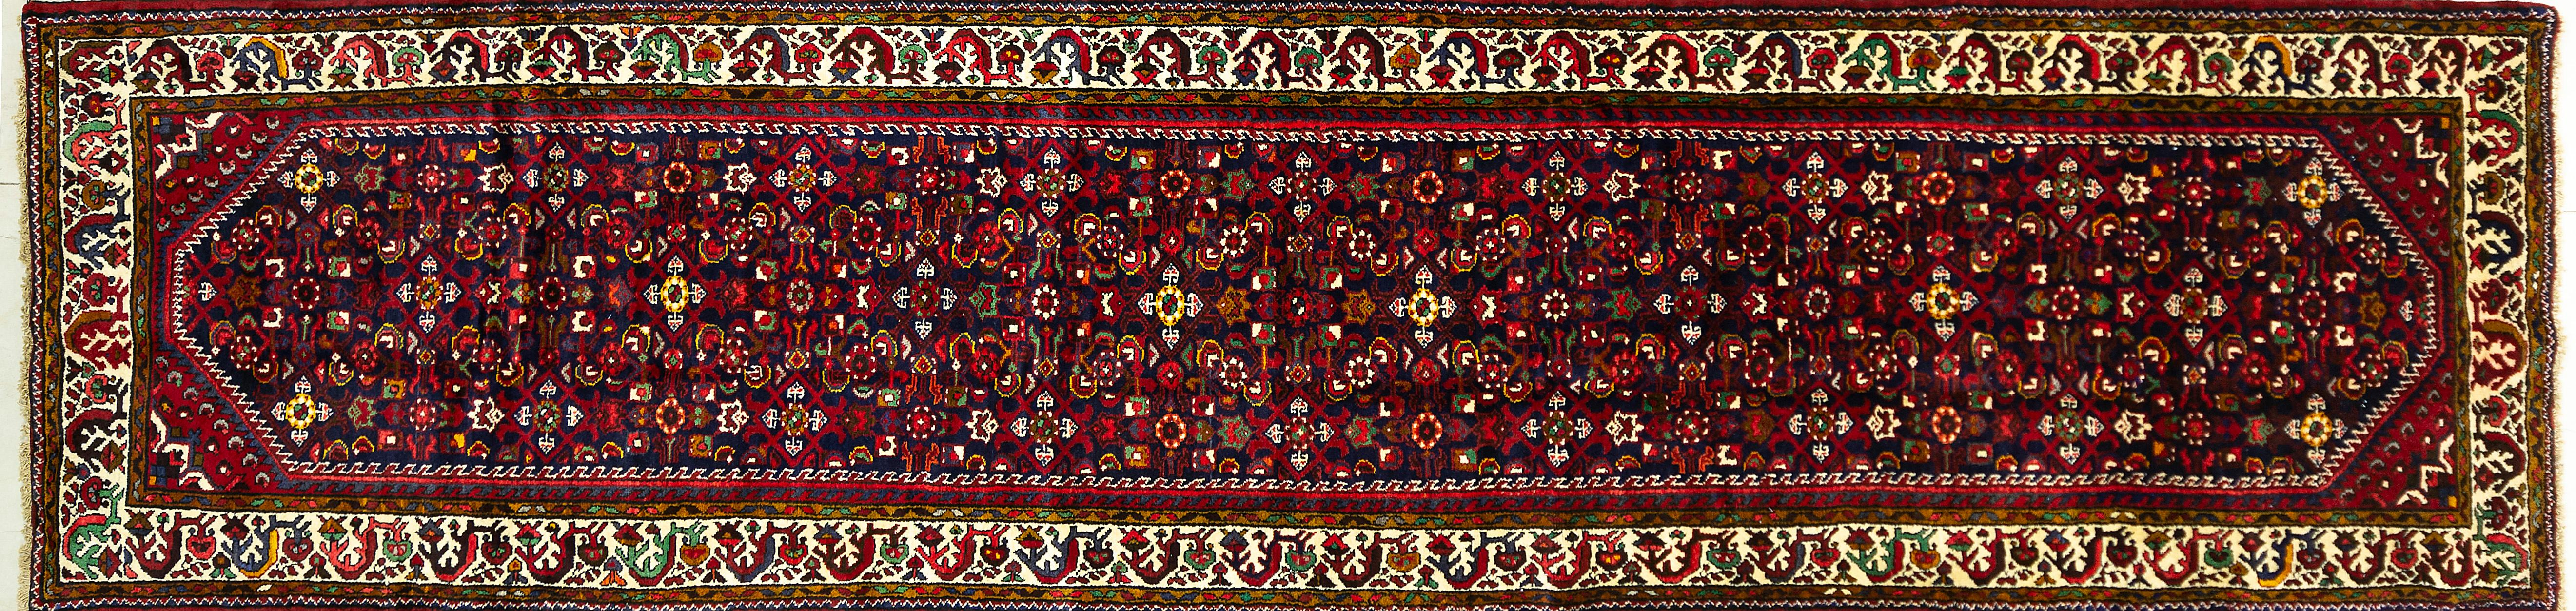 A Persian Hand Knotted Hamadan Runner, 470 x 113